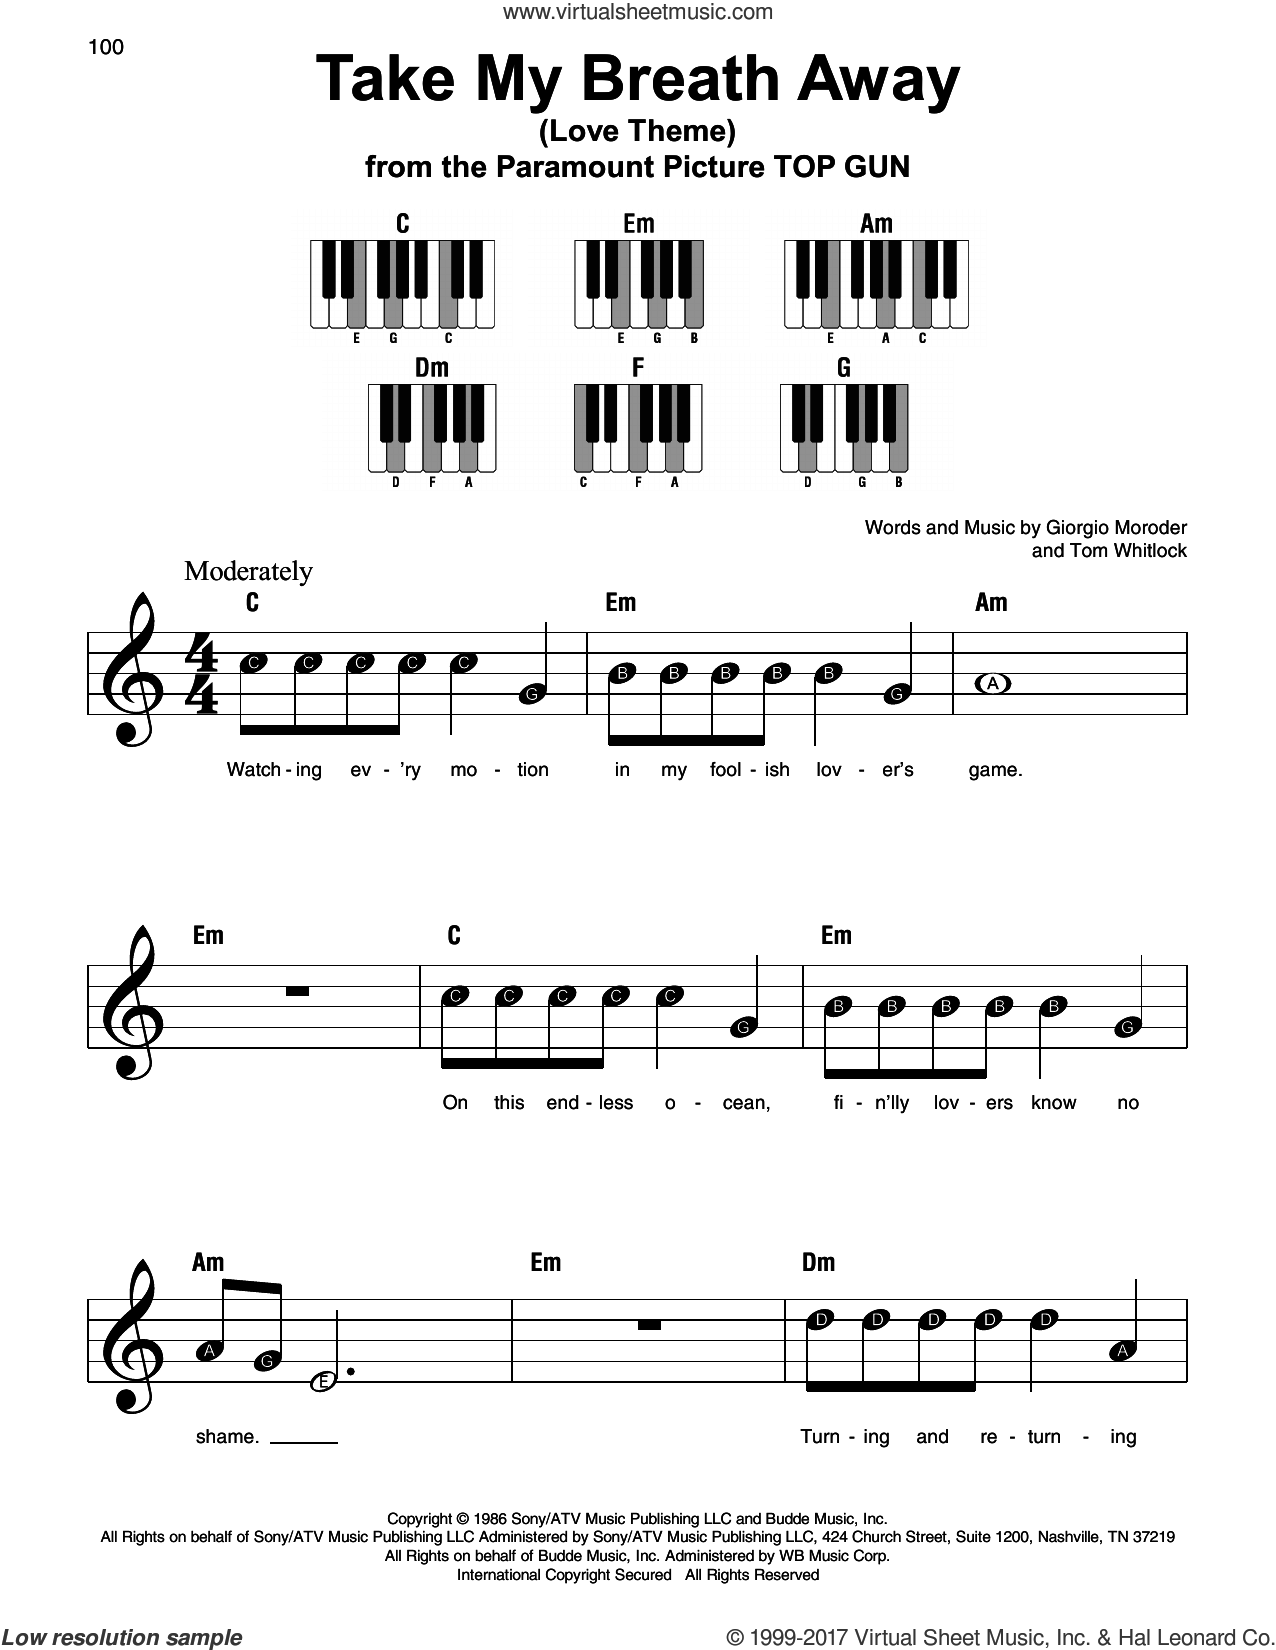 Take My Breath Away (Love Theme) sheet music for piano solo by Giorgio Moroder, Irving Berlin and Tom Whitlock, beginner skill level